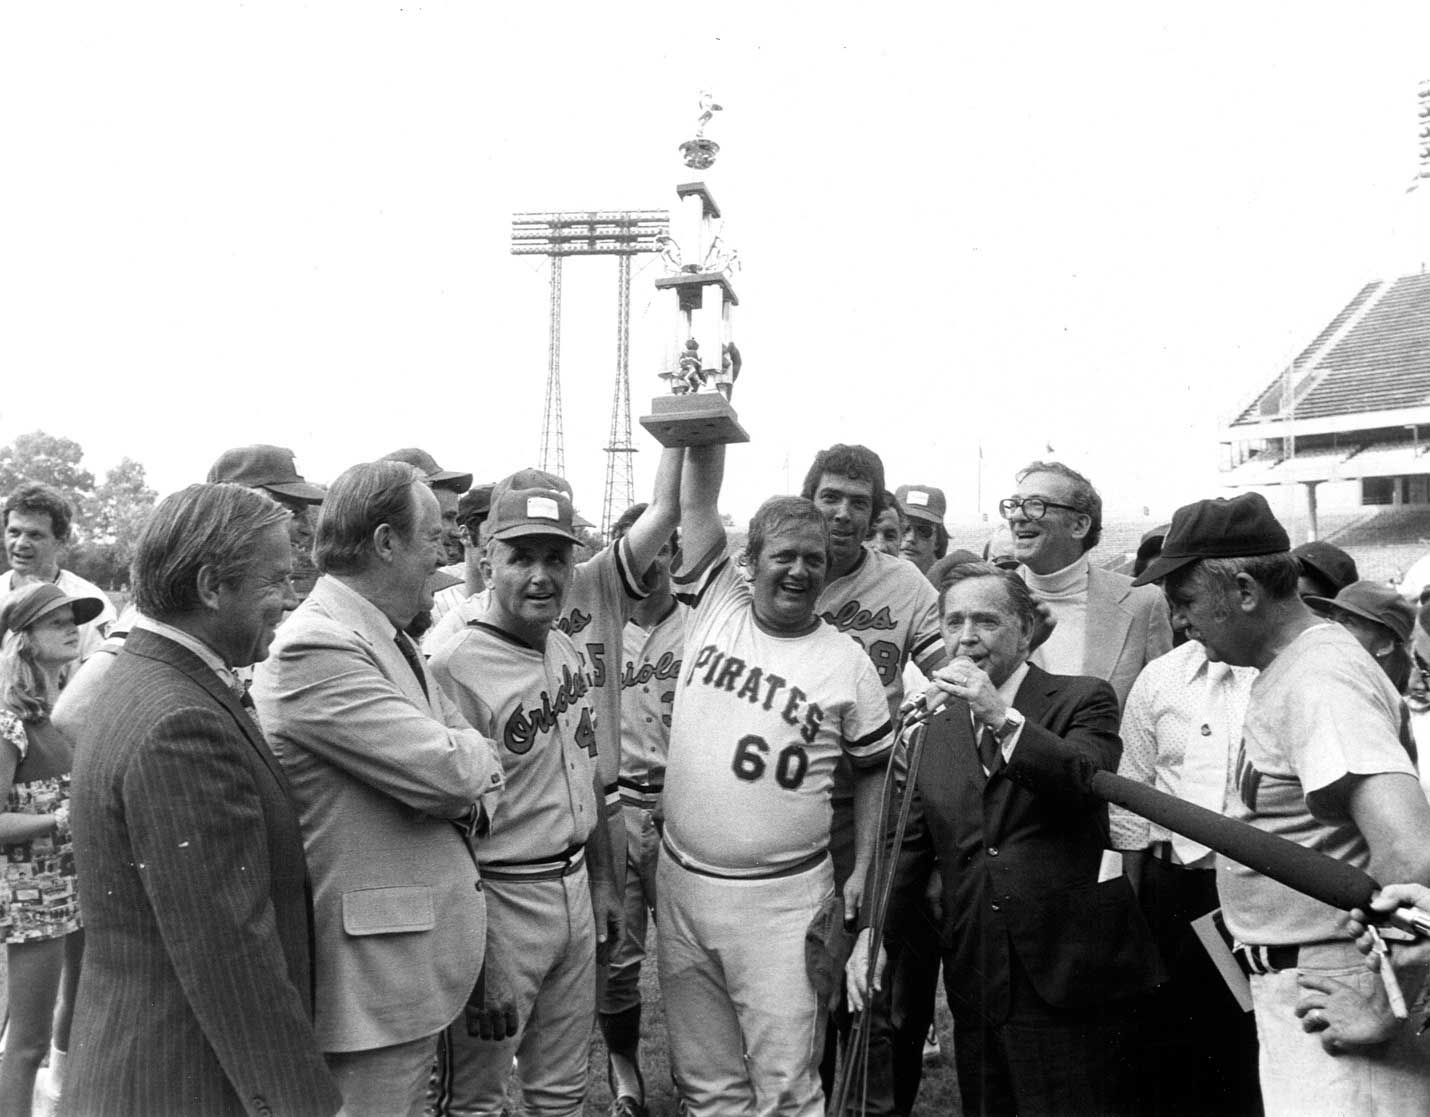 Democratic Team Manager Bill Chappell and Mendel Davis hold the Roll Call trophy after winning the Congressional Baseball Game of 1975.